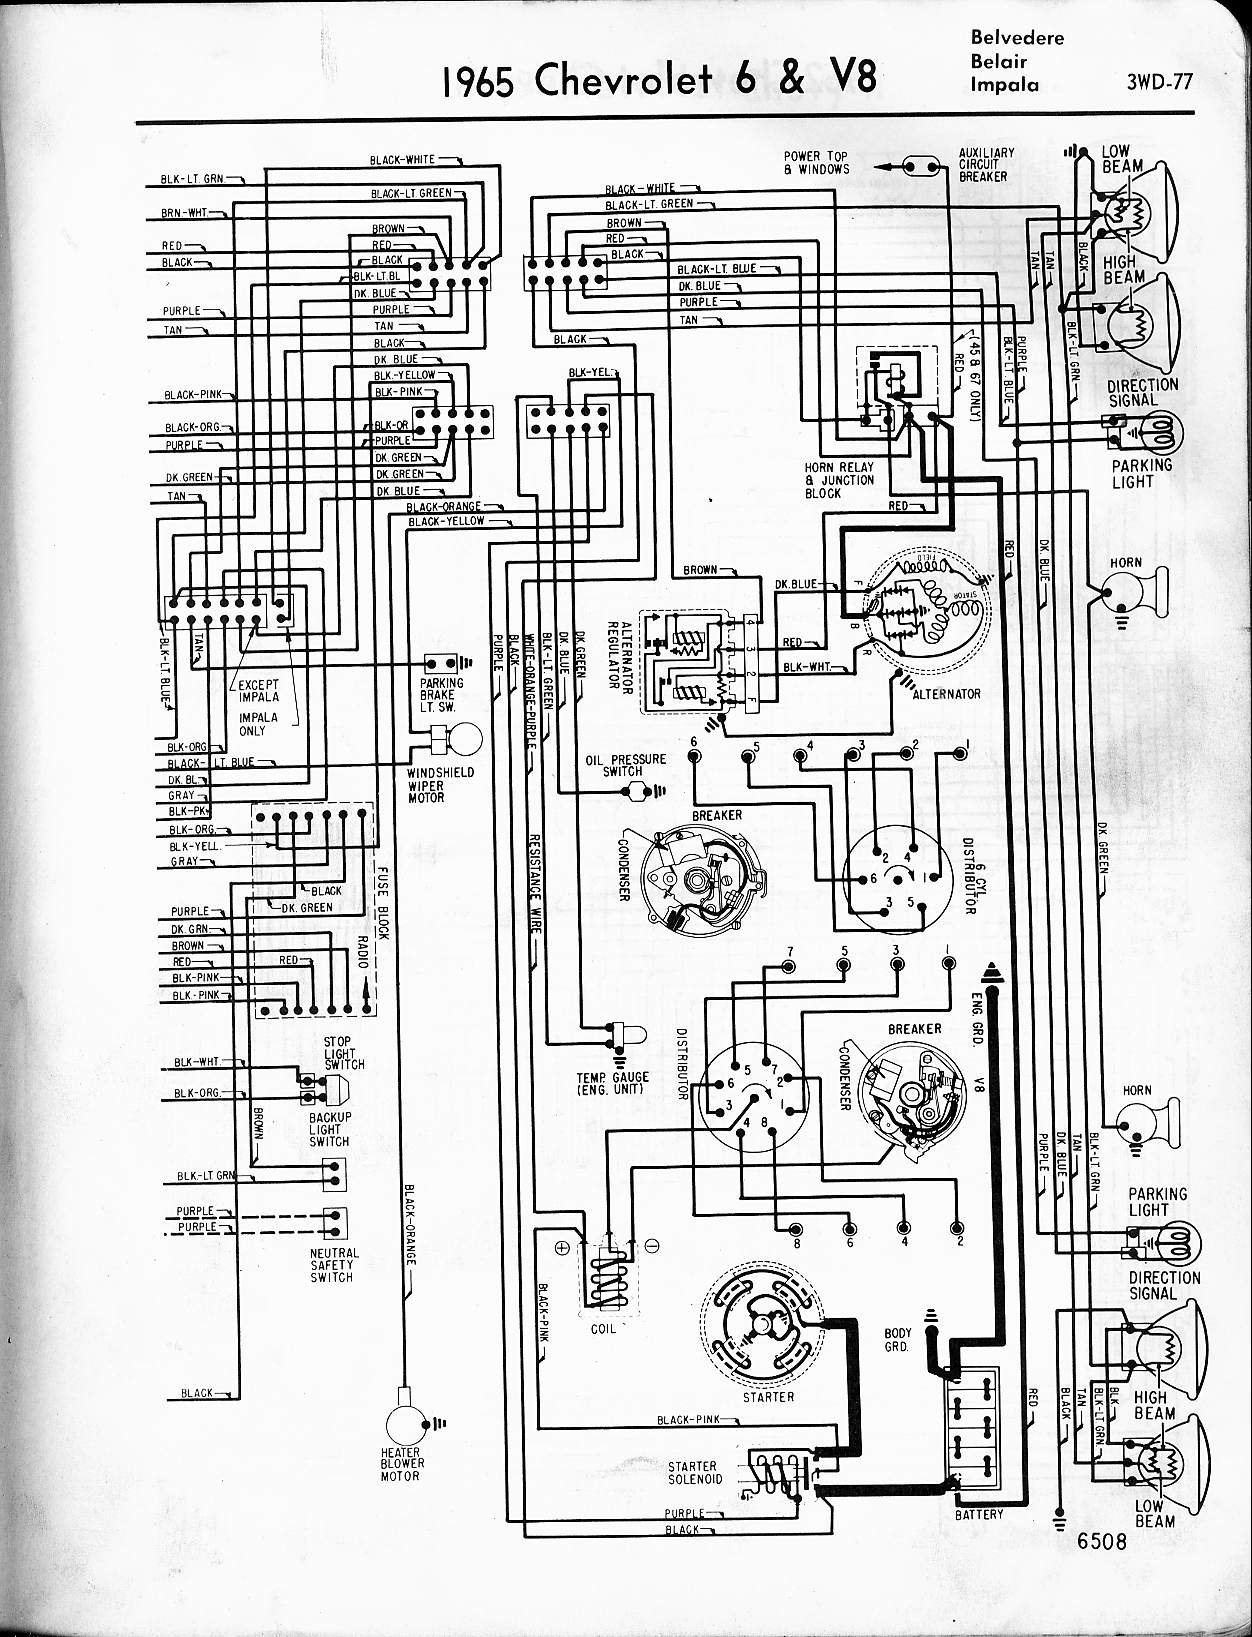 1969 impala wiring diagram schematic wiring library 1969 Chevy Chevelle 1964 impala wiper motor wiring diagram 1964 impala drive 1969 chevelle wiring diagram 67 impala wiring